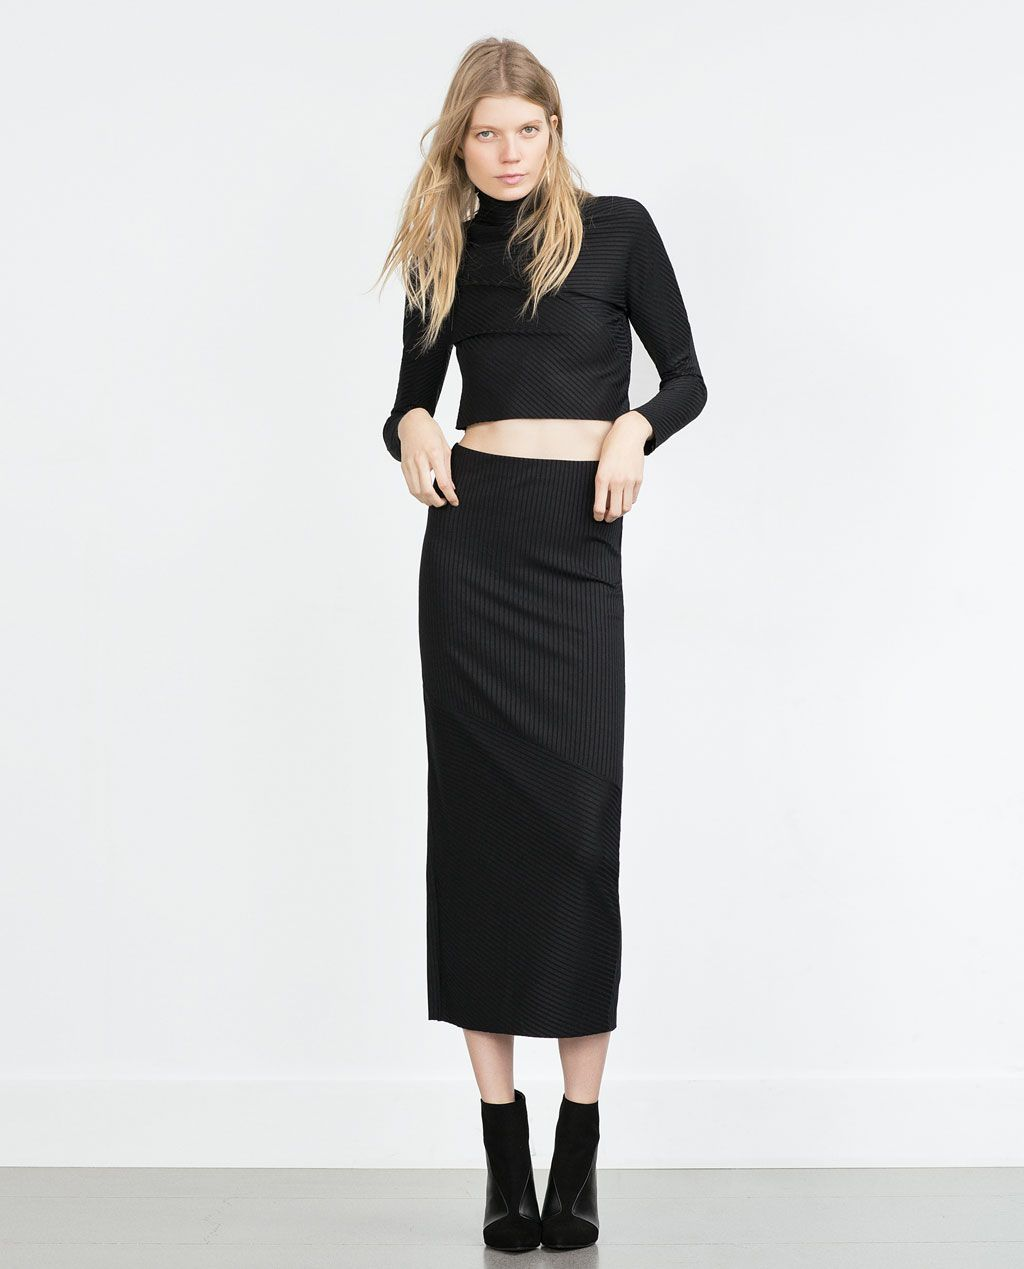 afd3aa1bde ZARA - NEW IN - LONG STRAIGHT SKIRT | Style and Trends in 2019 ...